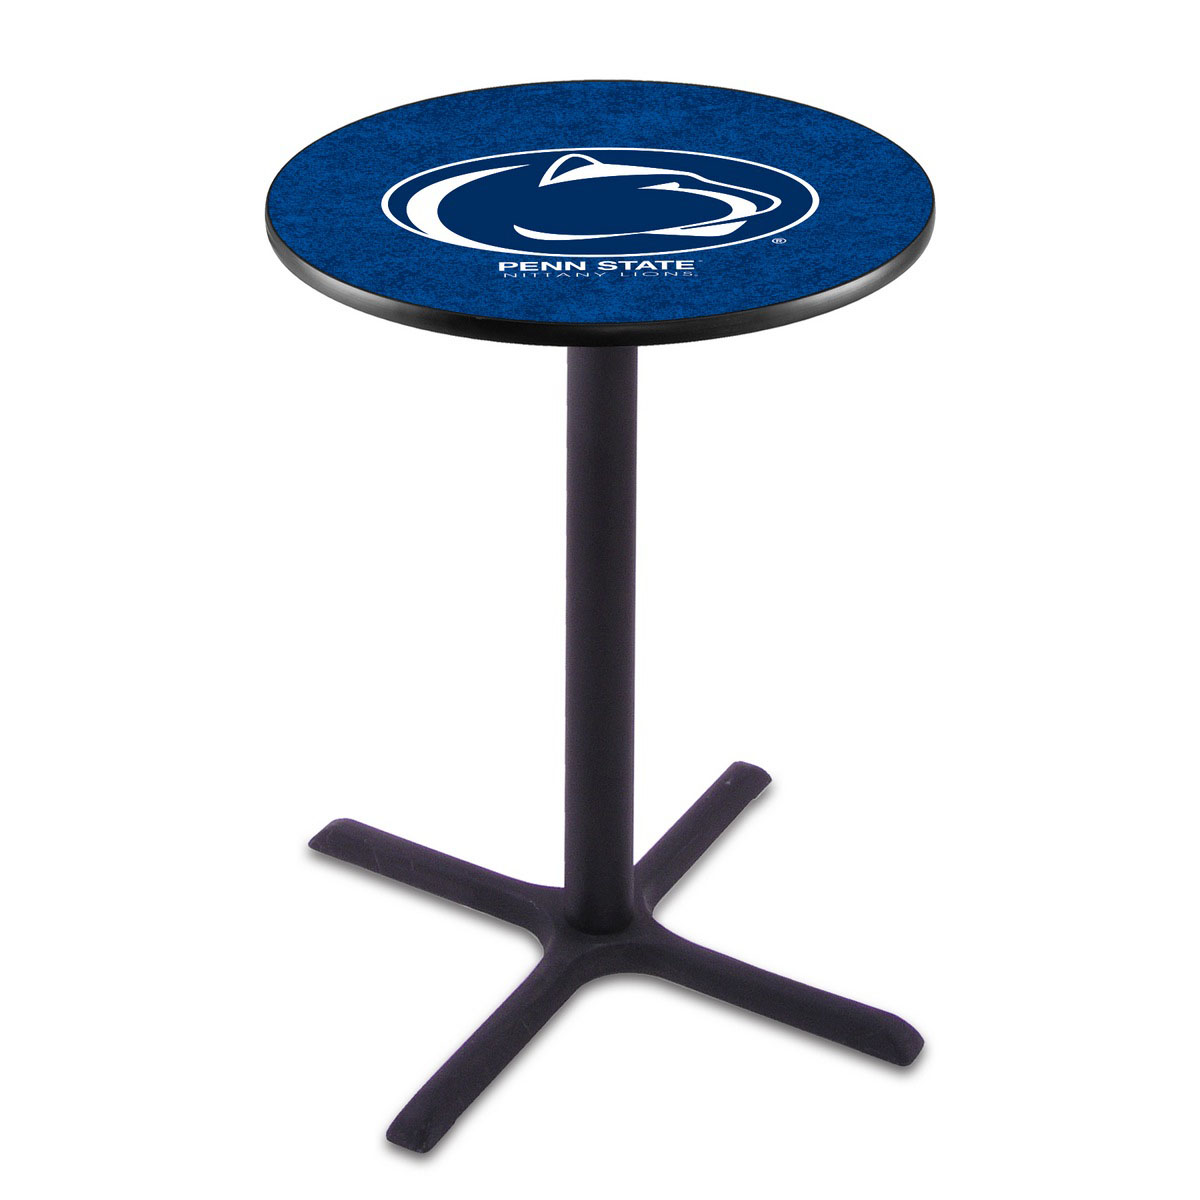 Serious Penn State Wrinkle Pub Table Product Photo